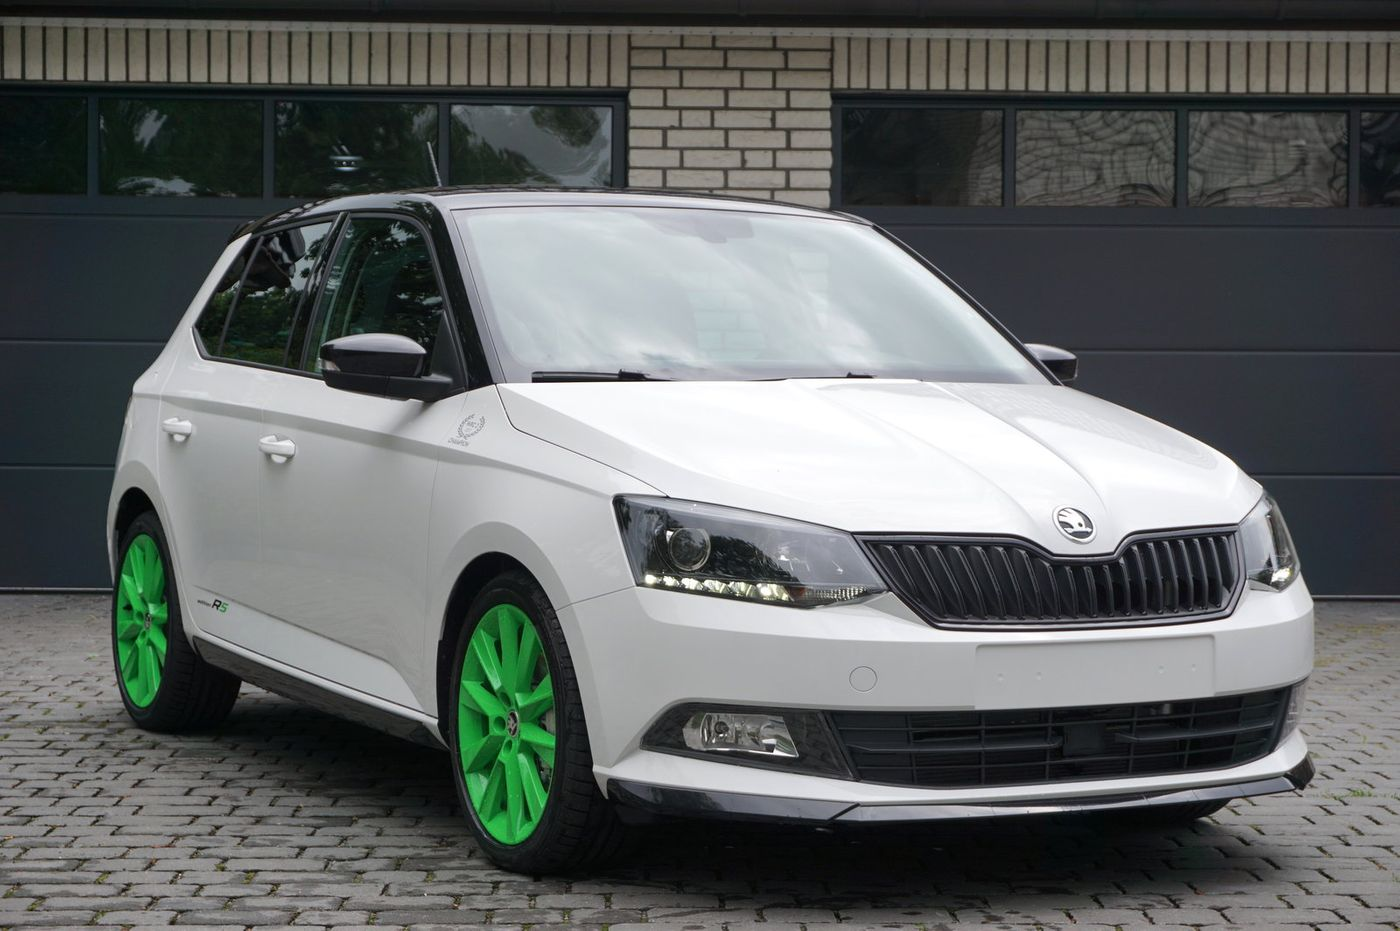 skoda fabia 1 4 tsi dsg r5 edition navi tageszulassung. Black Bedroom Furniture Sets. Home Design Ideas